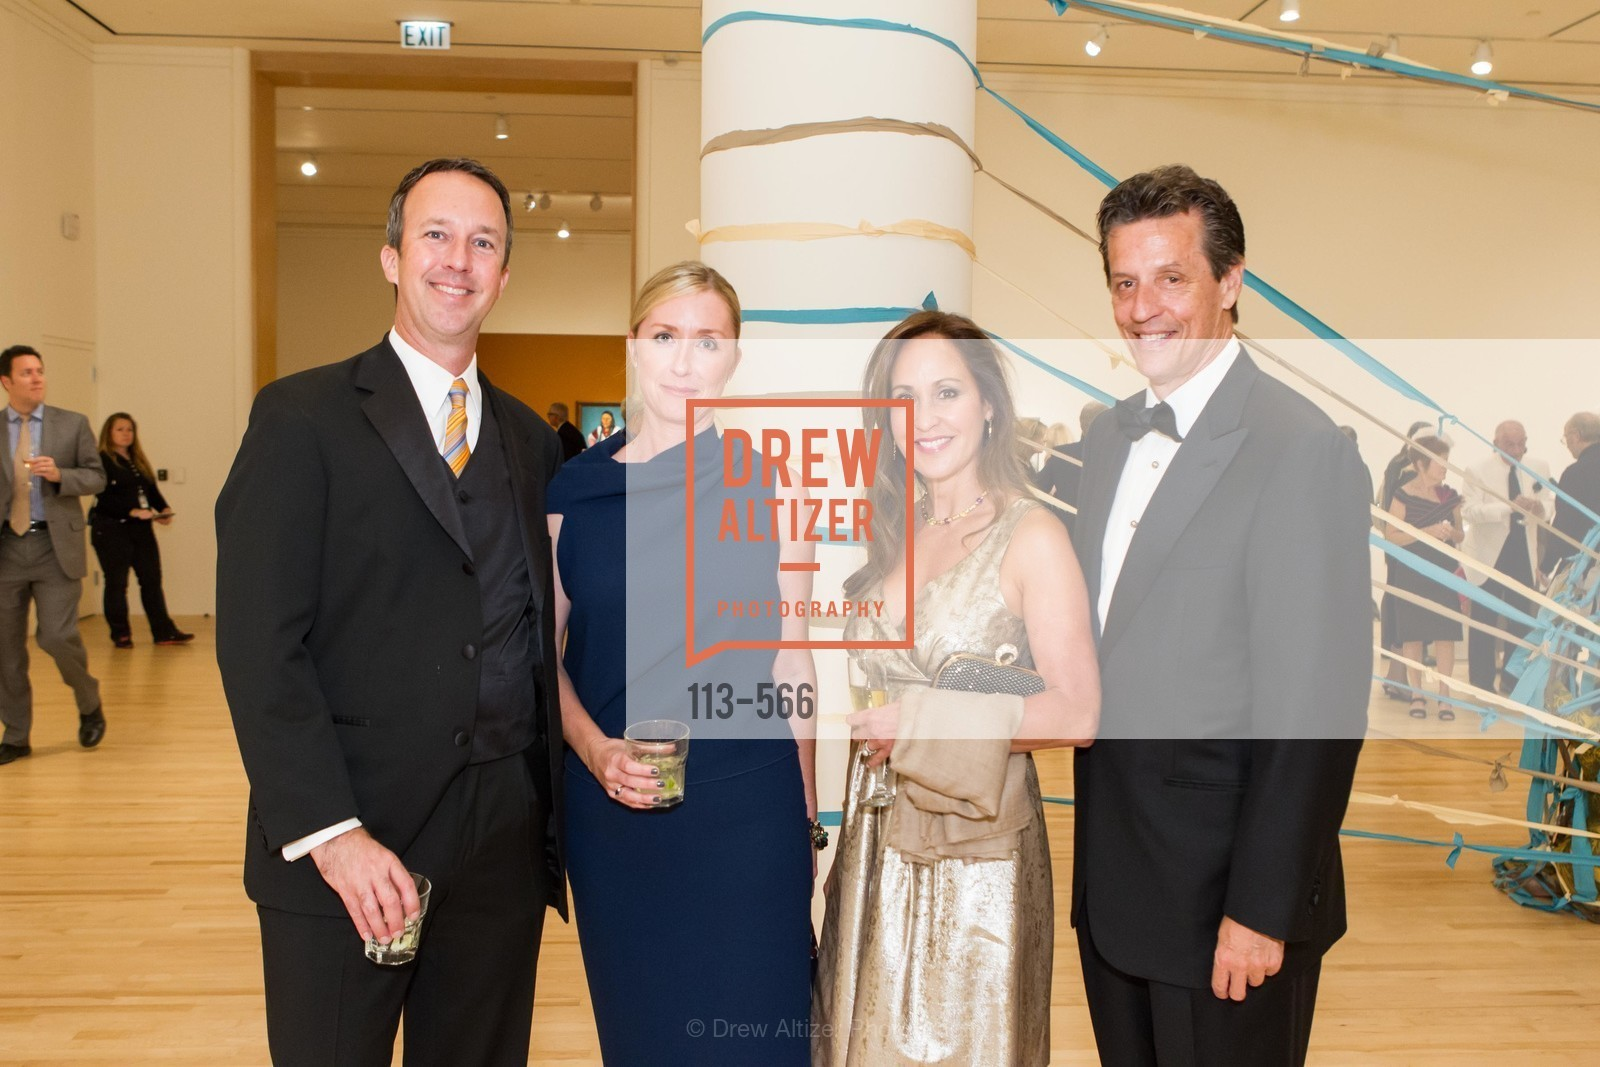 Tad Freese, Brooke Hartzell, Roxanne Fleming, David Soward, SAN JOSE MUSEUM OF ART'S Spectrum Gala - 45th Anniversary, US, September 13th, 2014,Drew Altizer, Drew Altizer Photography, full-service agency, private events, San Francisco photographer, photographer california